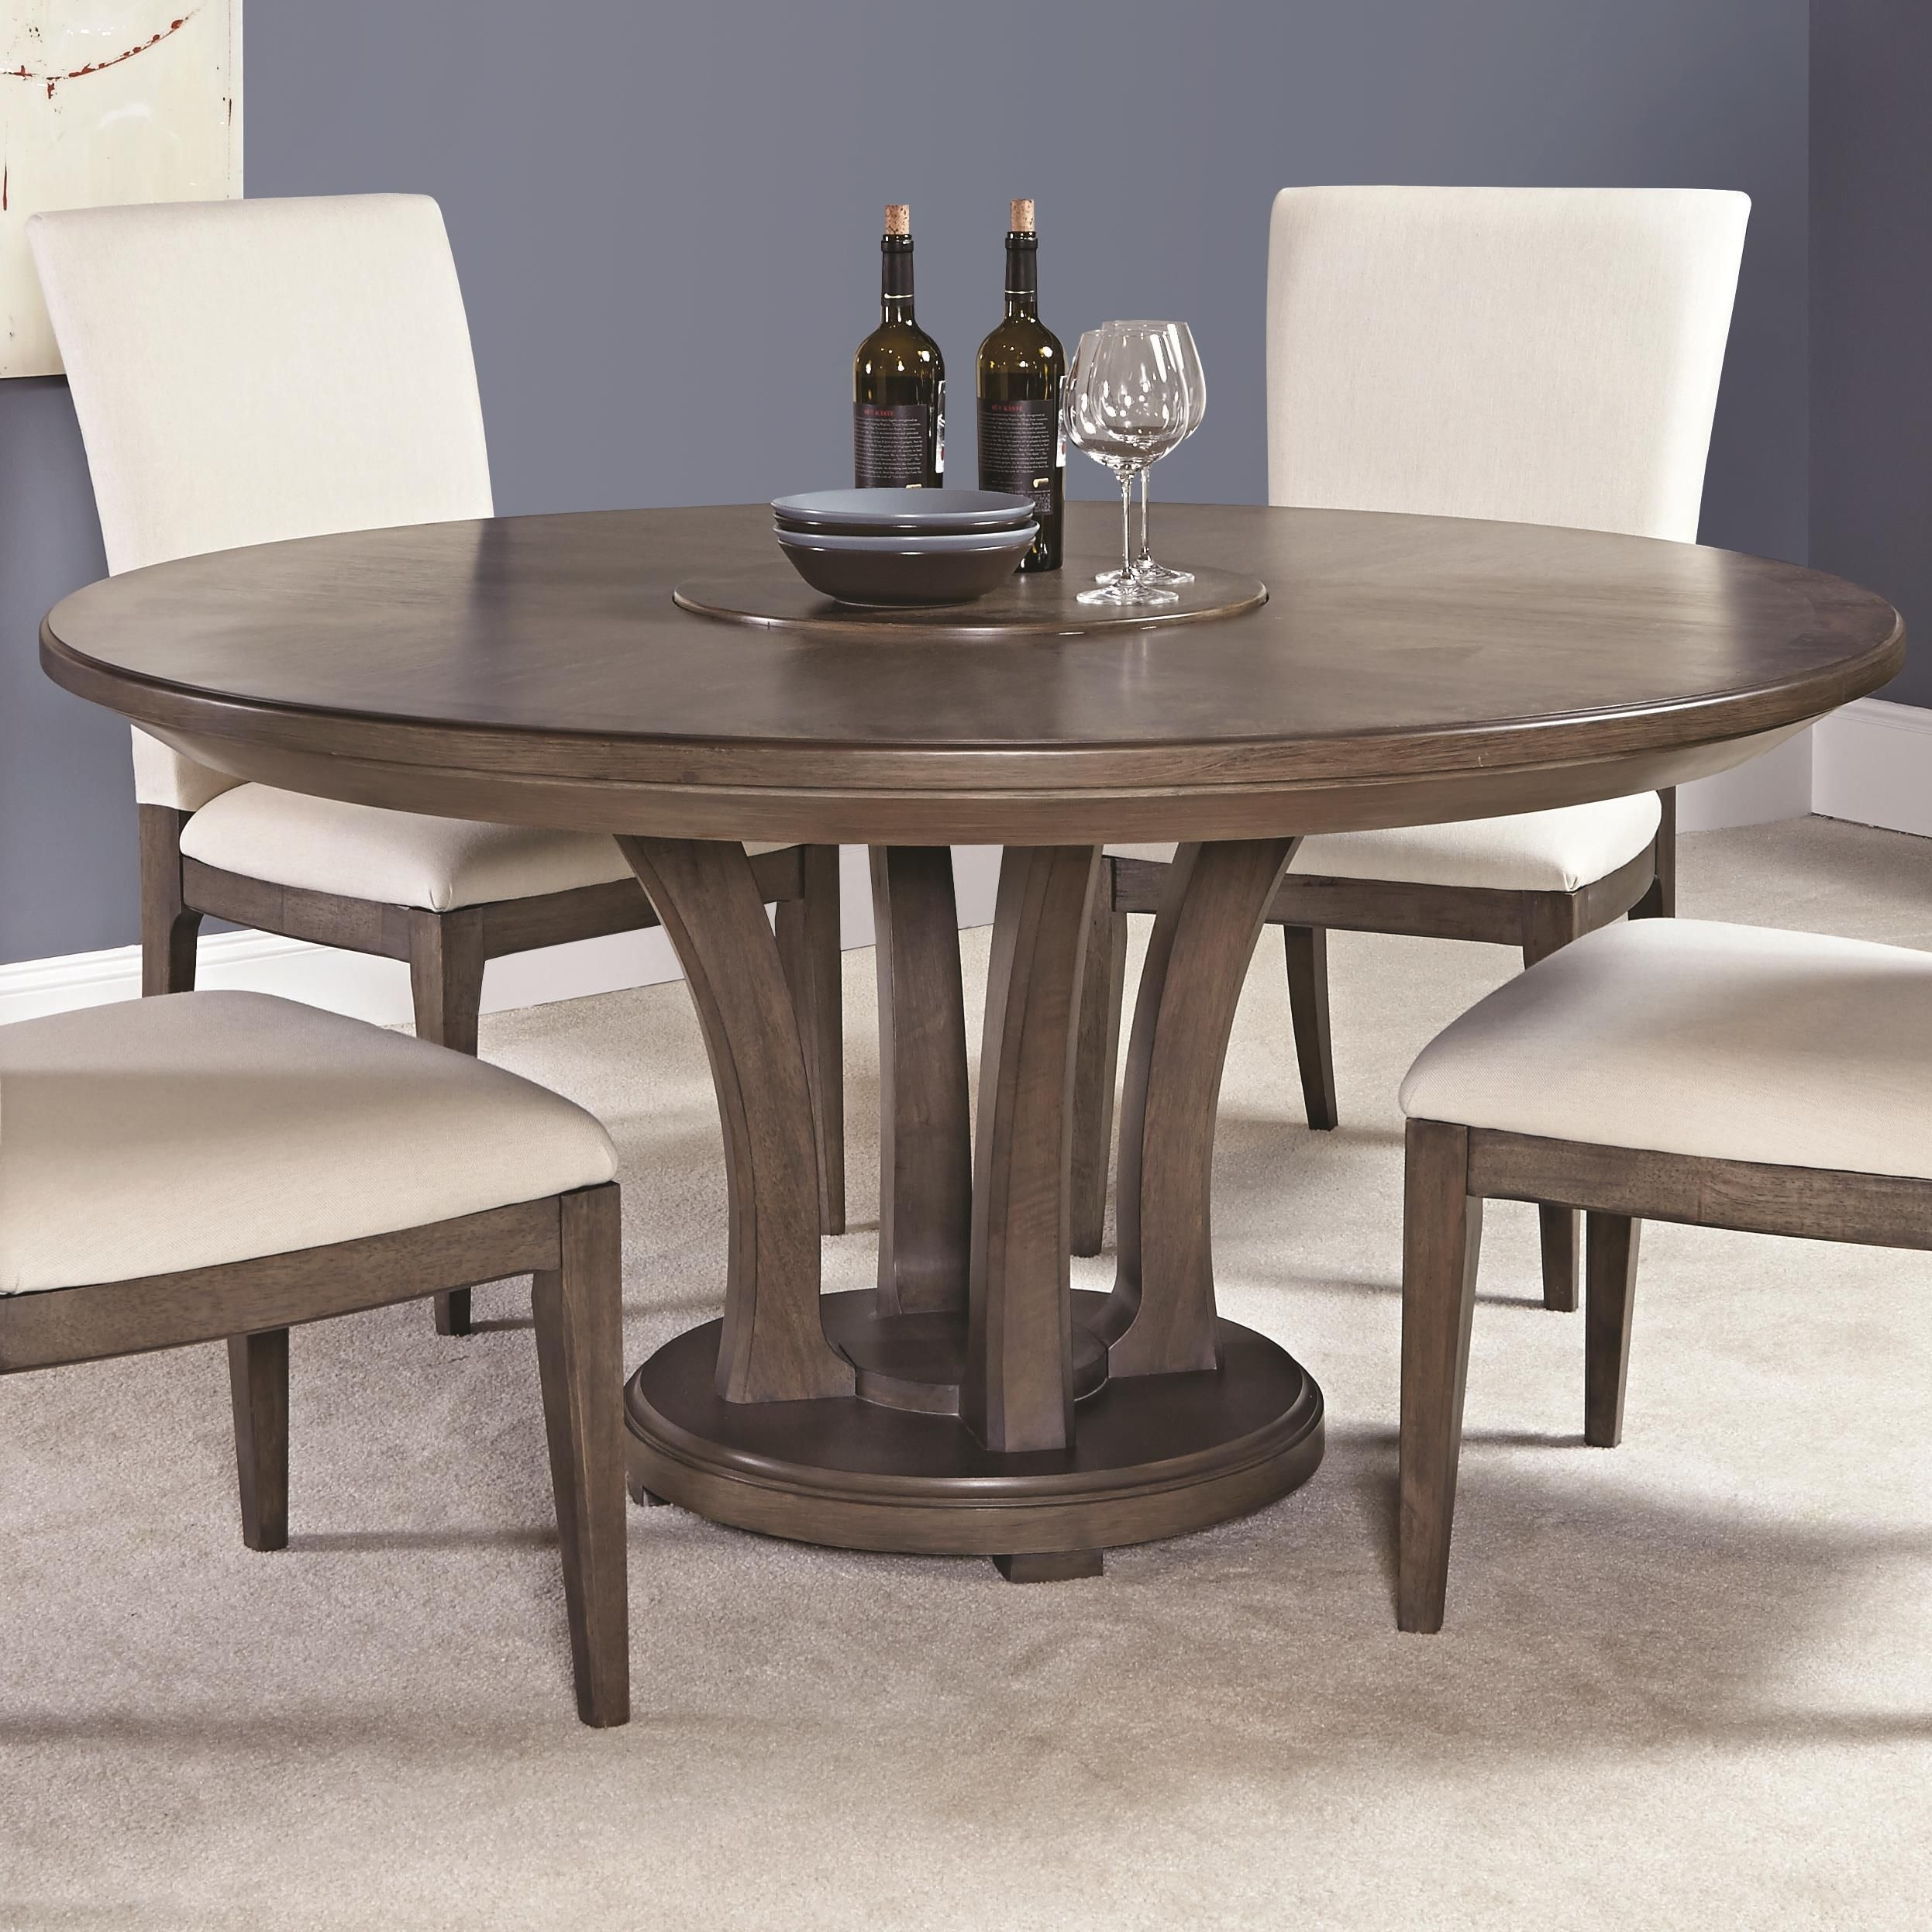 Park Studio Contemporary 62Inch Round Dining Table With Trestle Baseamerican Drew  Round